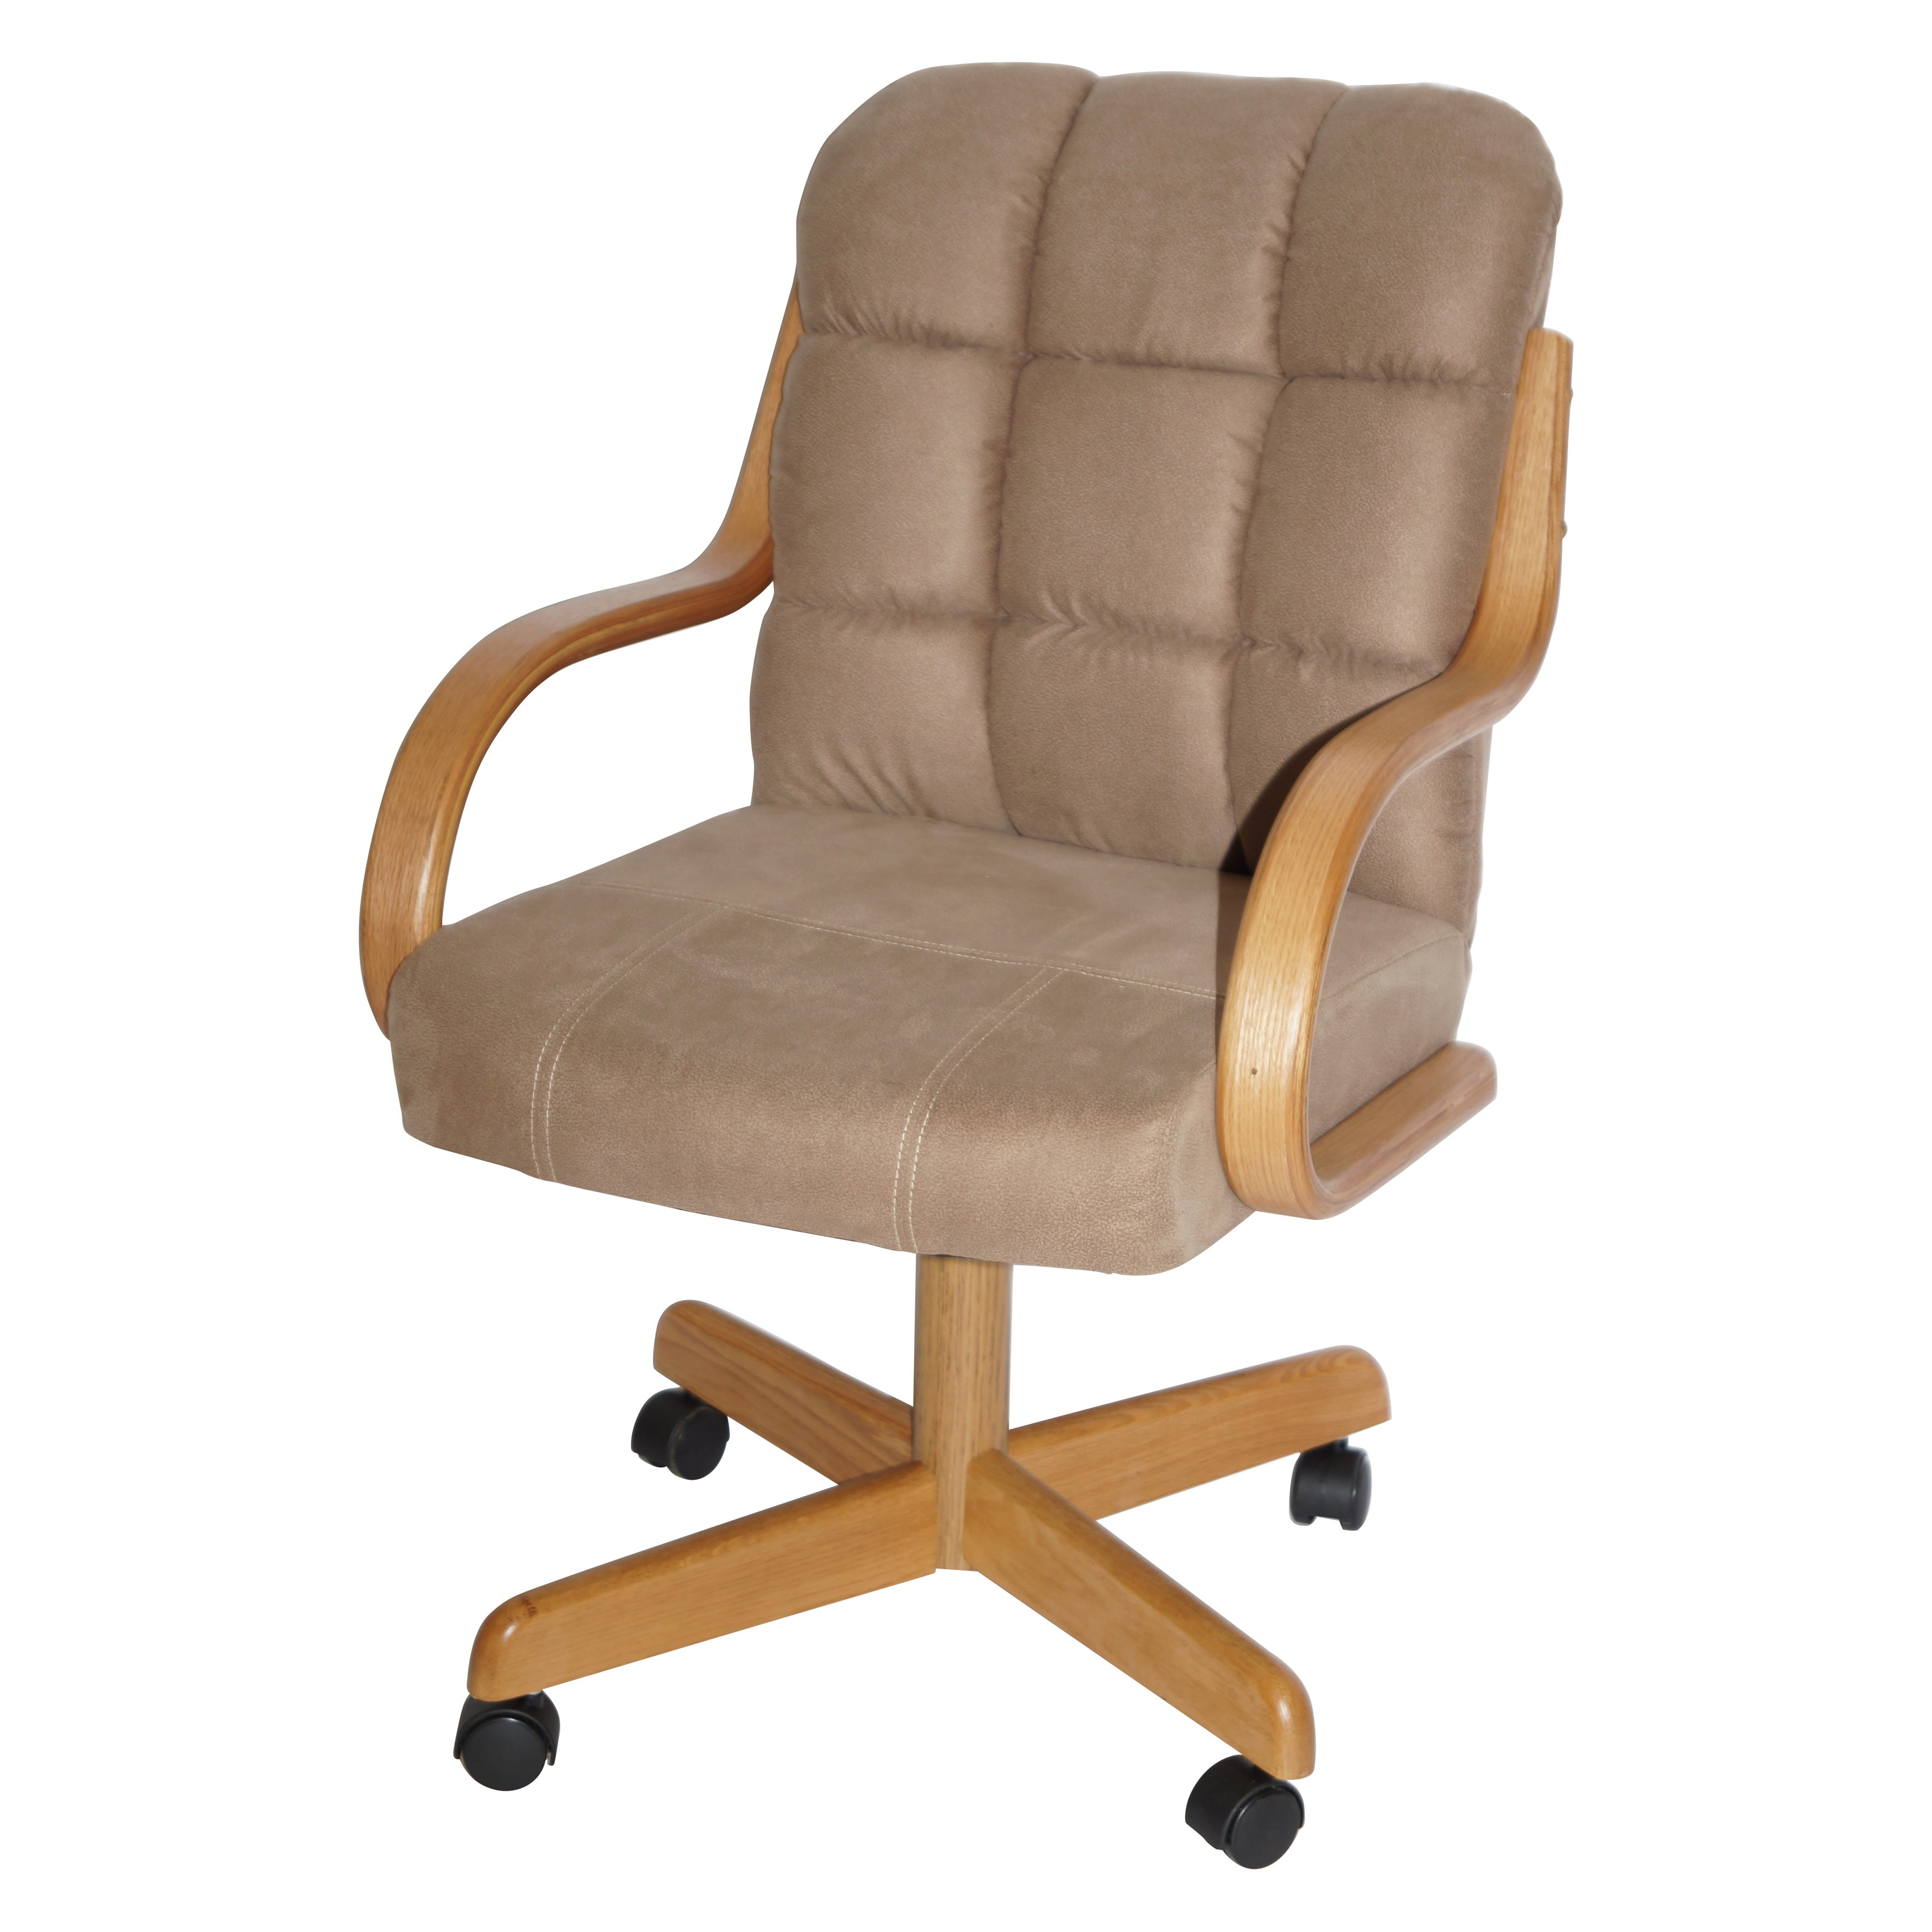 Brown-upholstered Casual Rolling Dining Chair at Sears.com